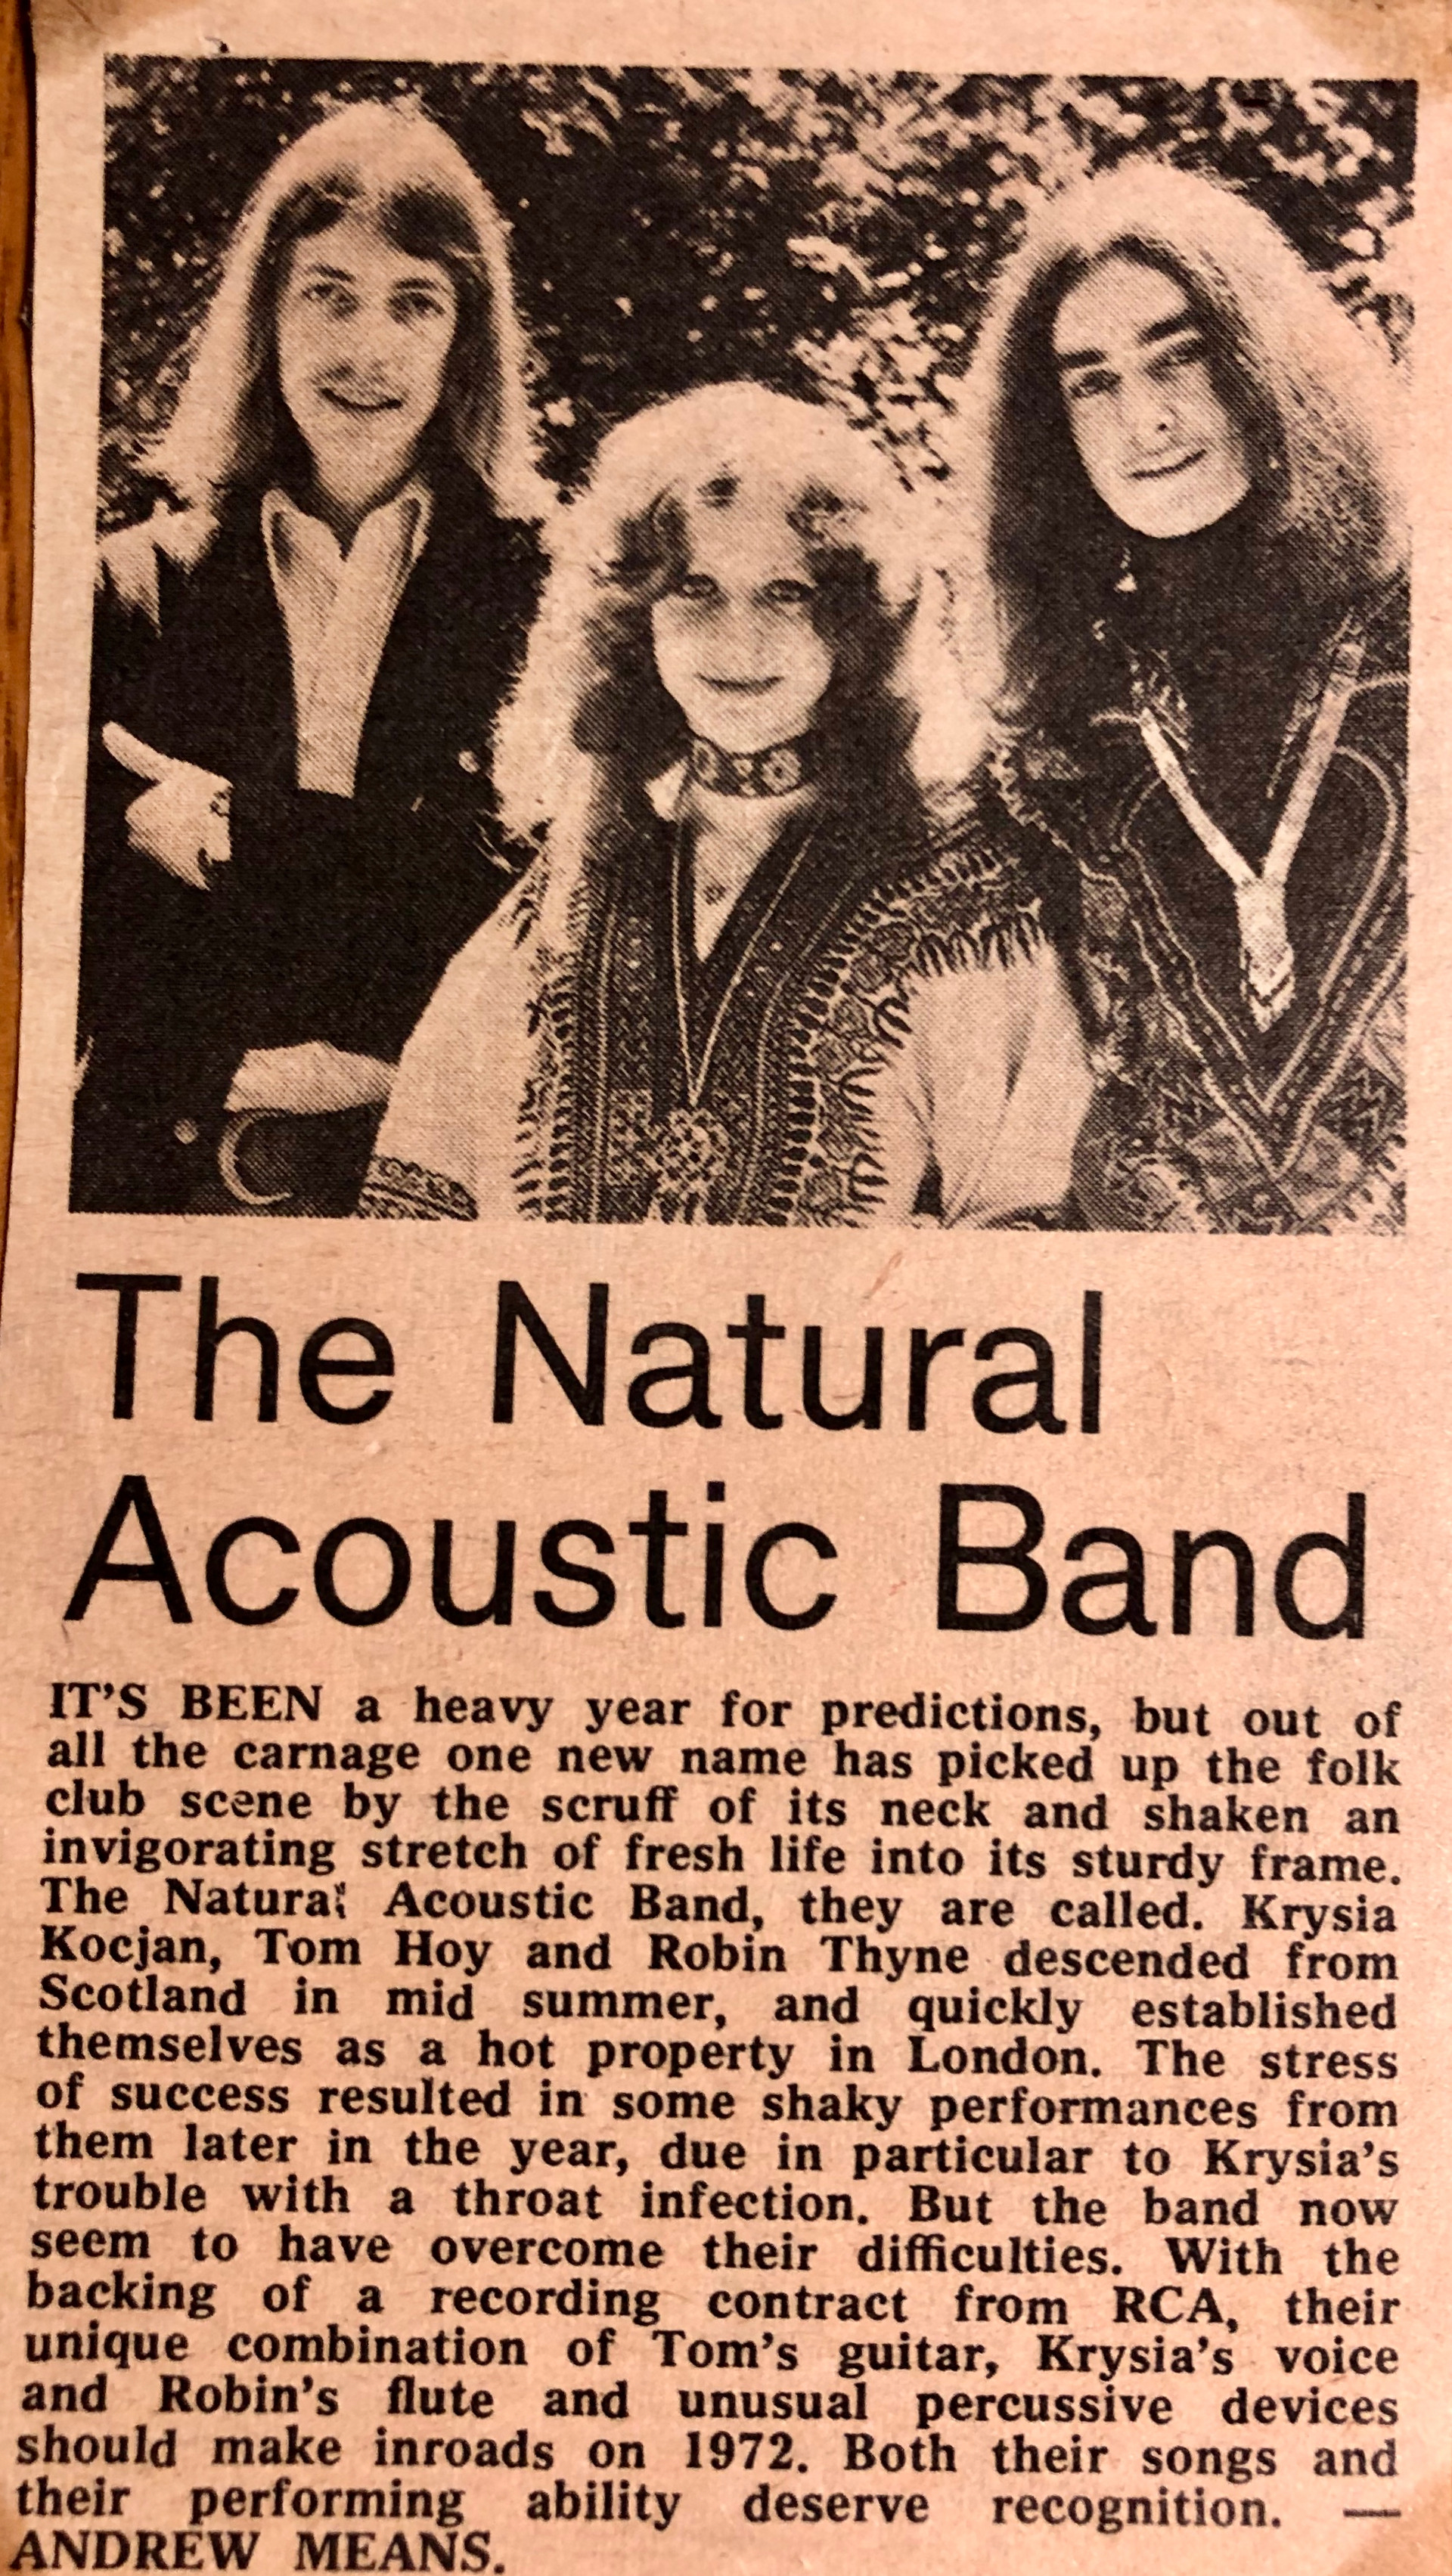 The Natural Acoustic Band